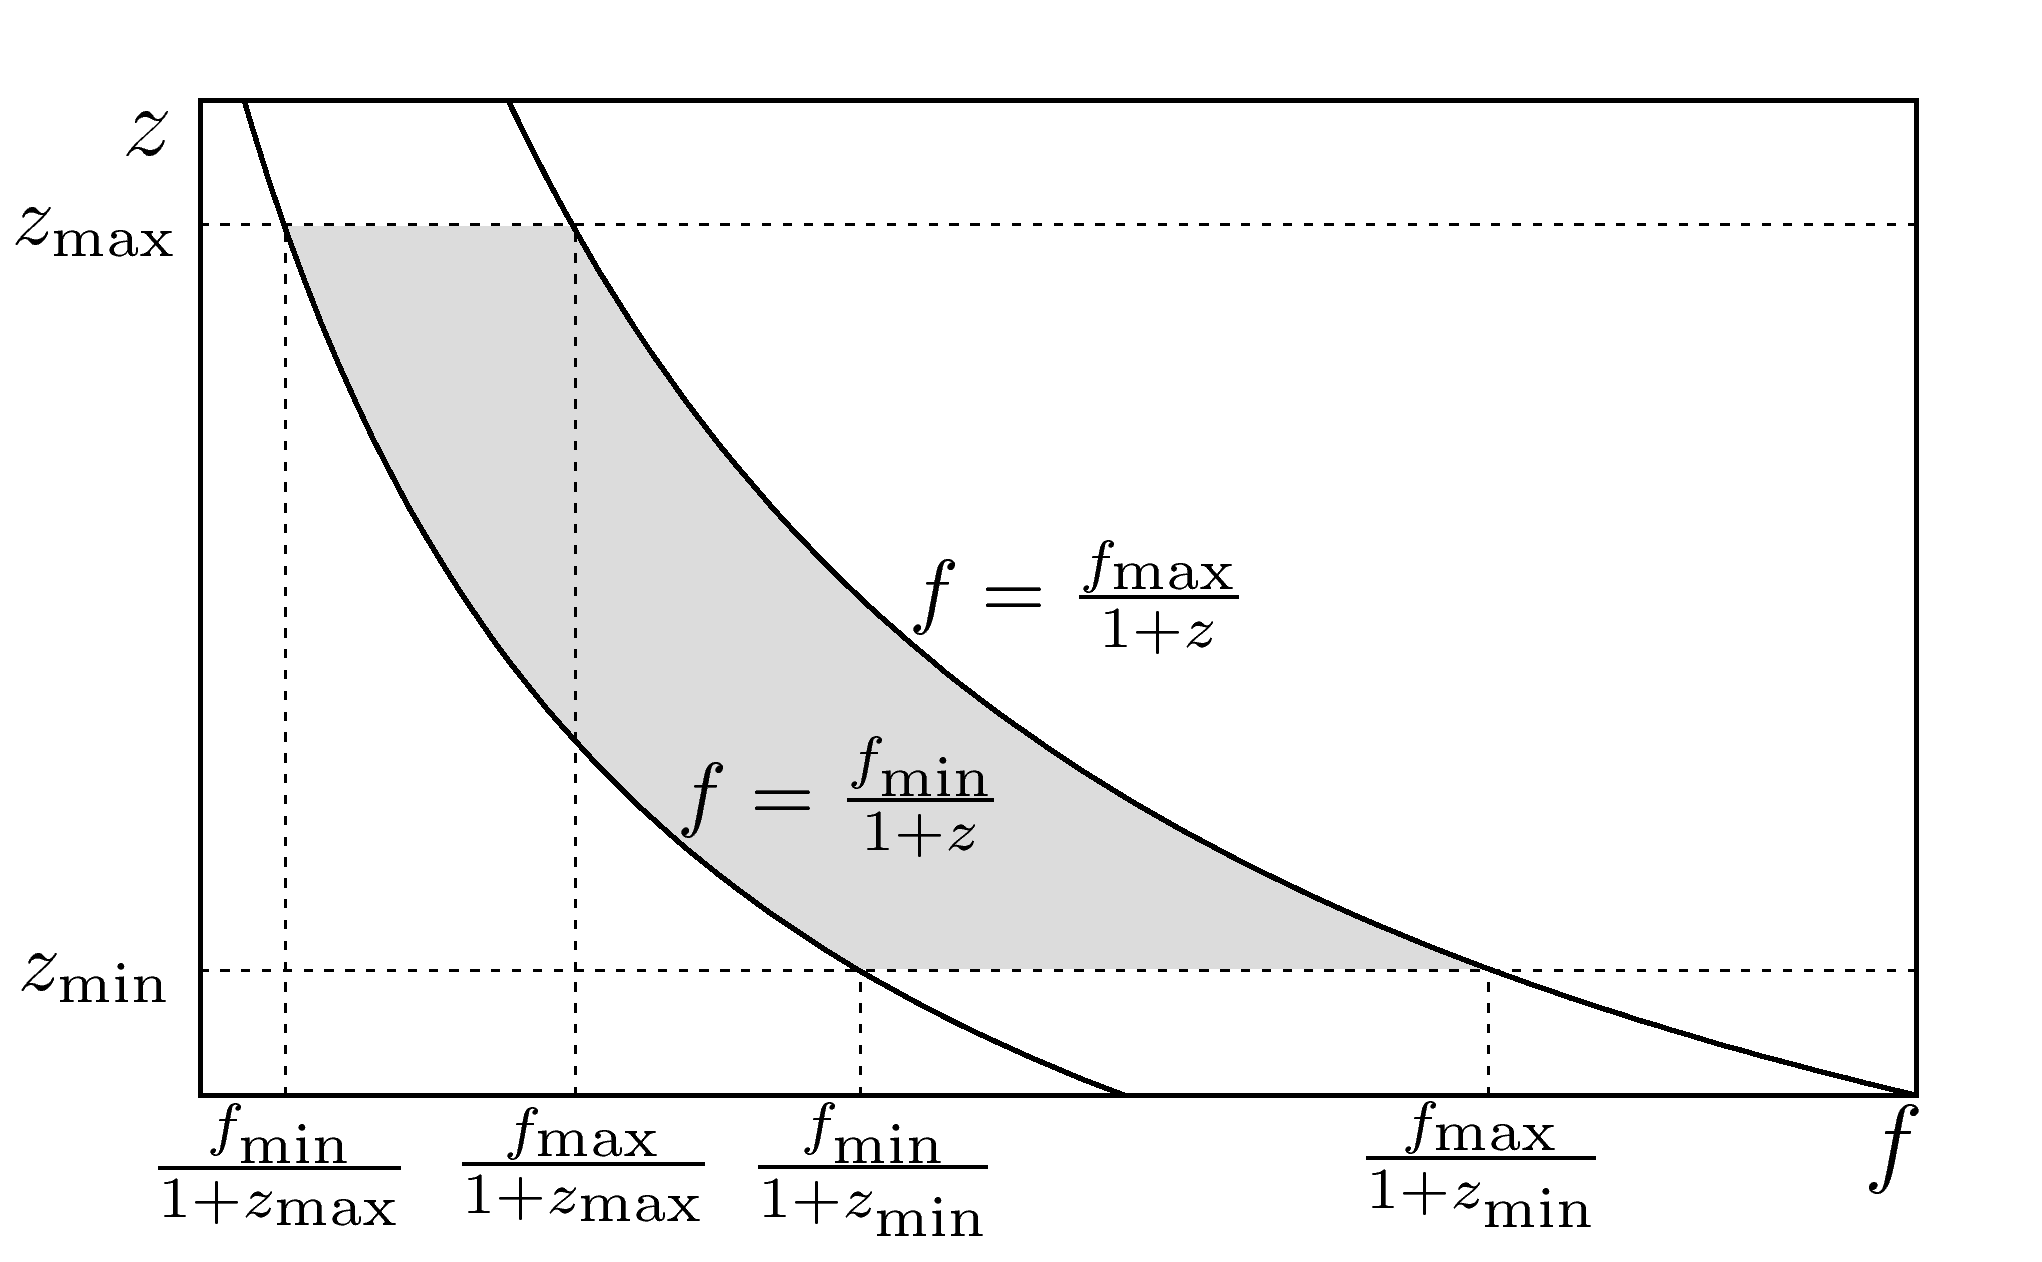 Redshift versus observed frequency. The spectral function of the total background of a certain ensemble has support only within the shaded area.